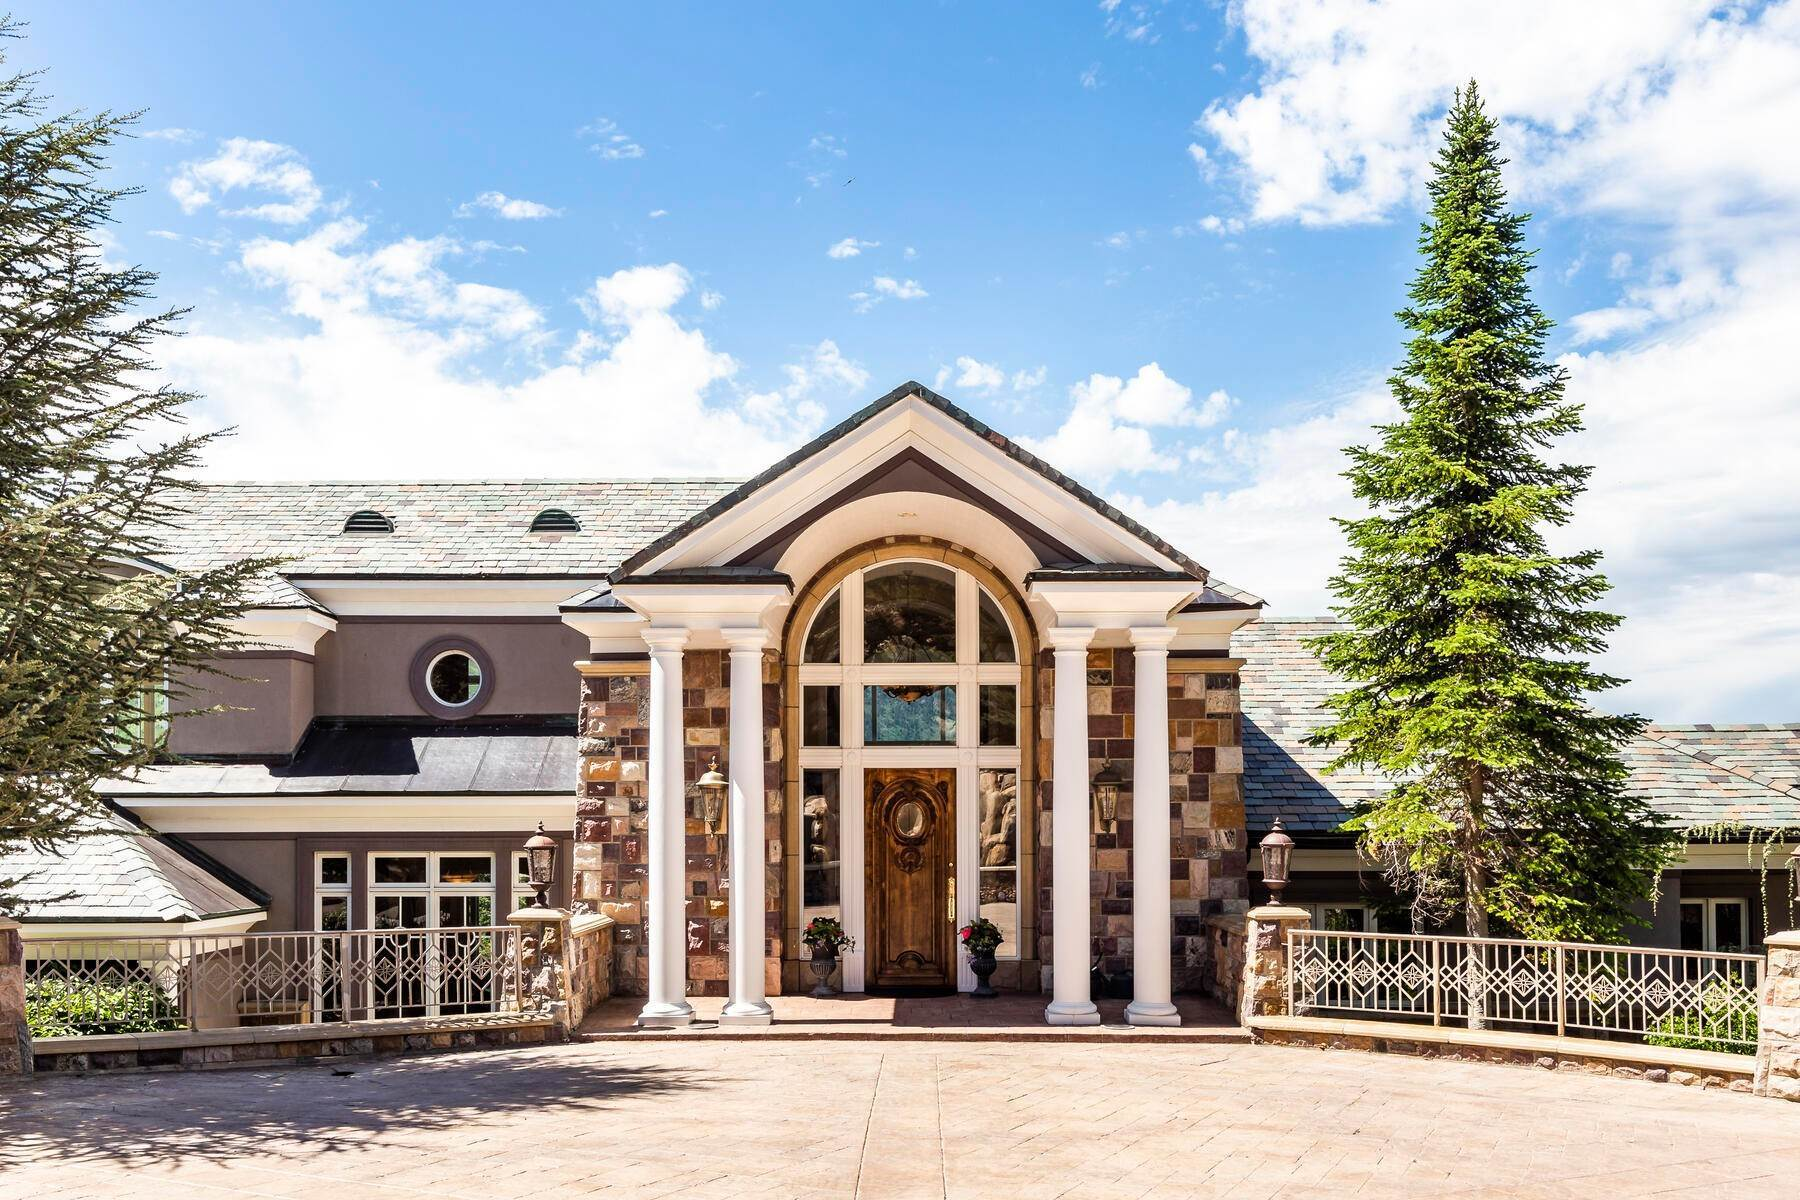 Property for Sale at Elegant Home With Breathtaking Views 5678 Twin Creek Rd Salt Lake City, Utah 84108 United States